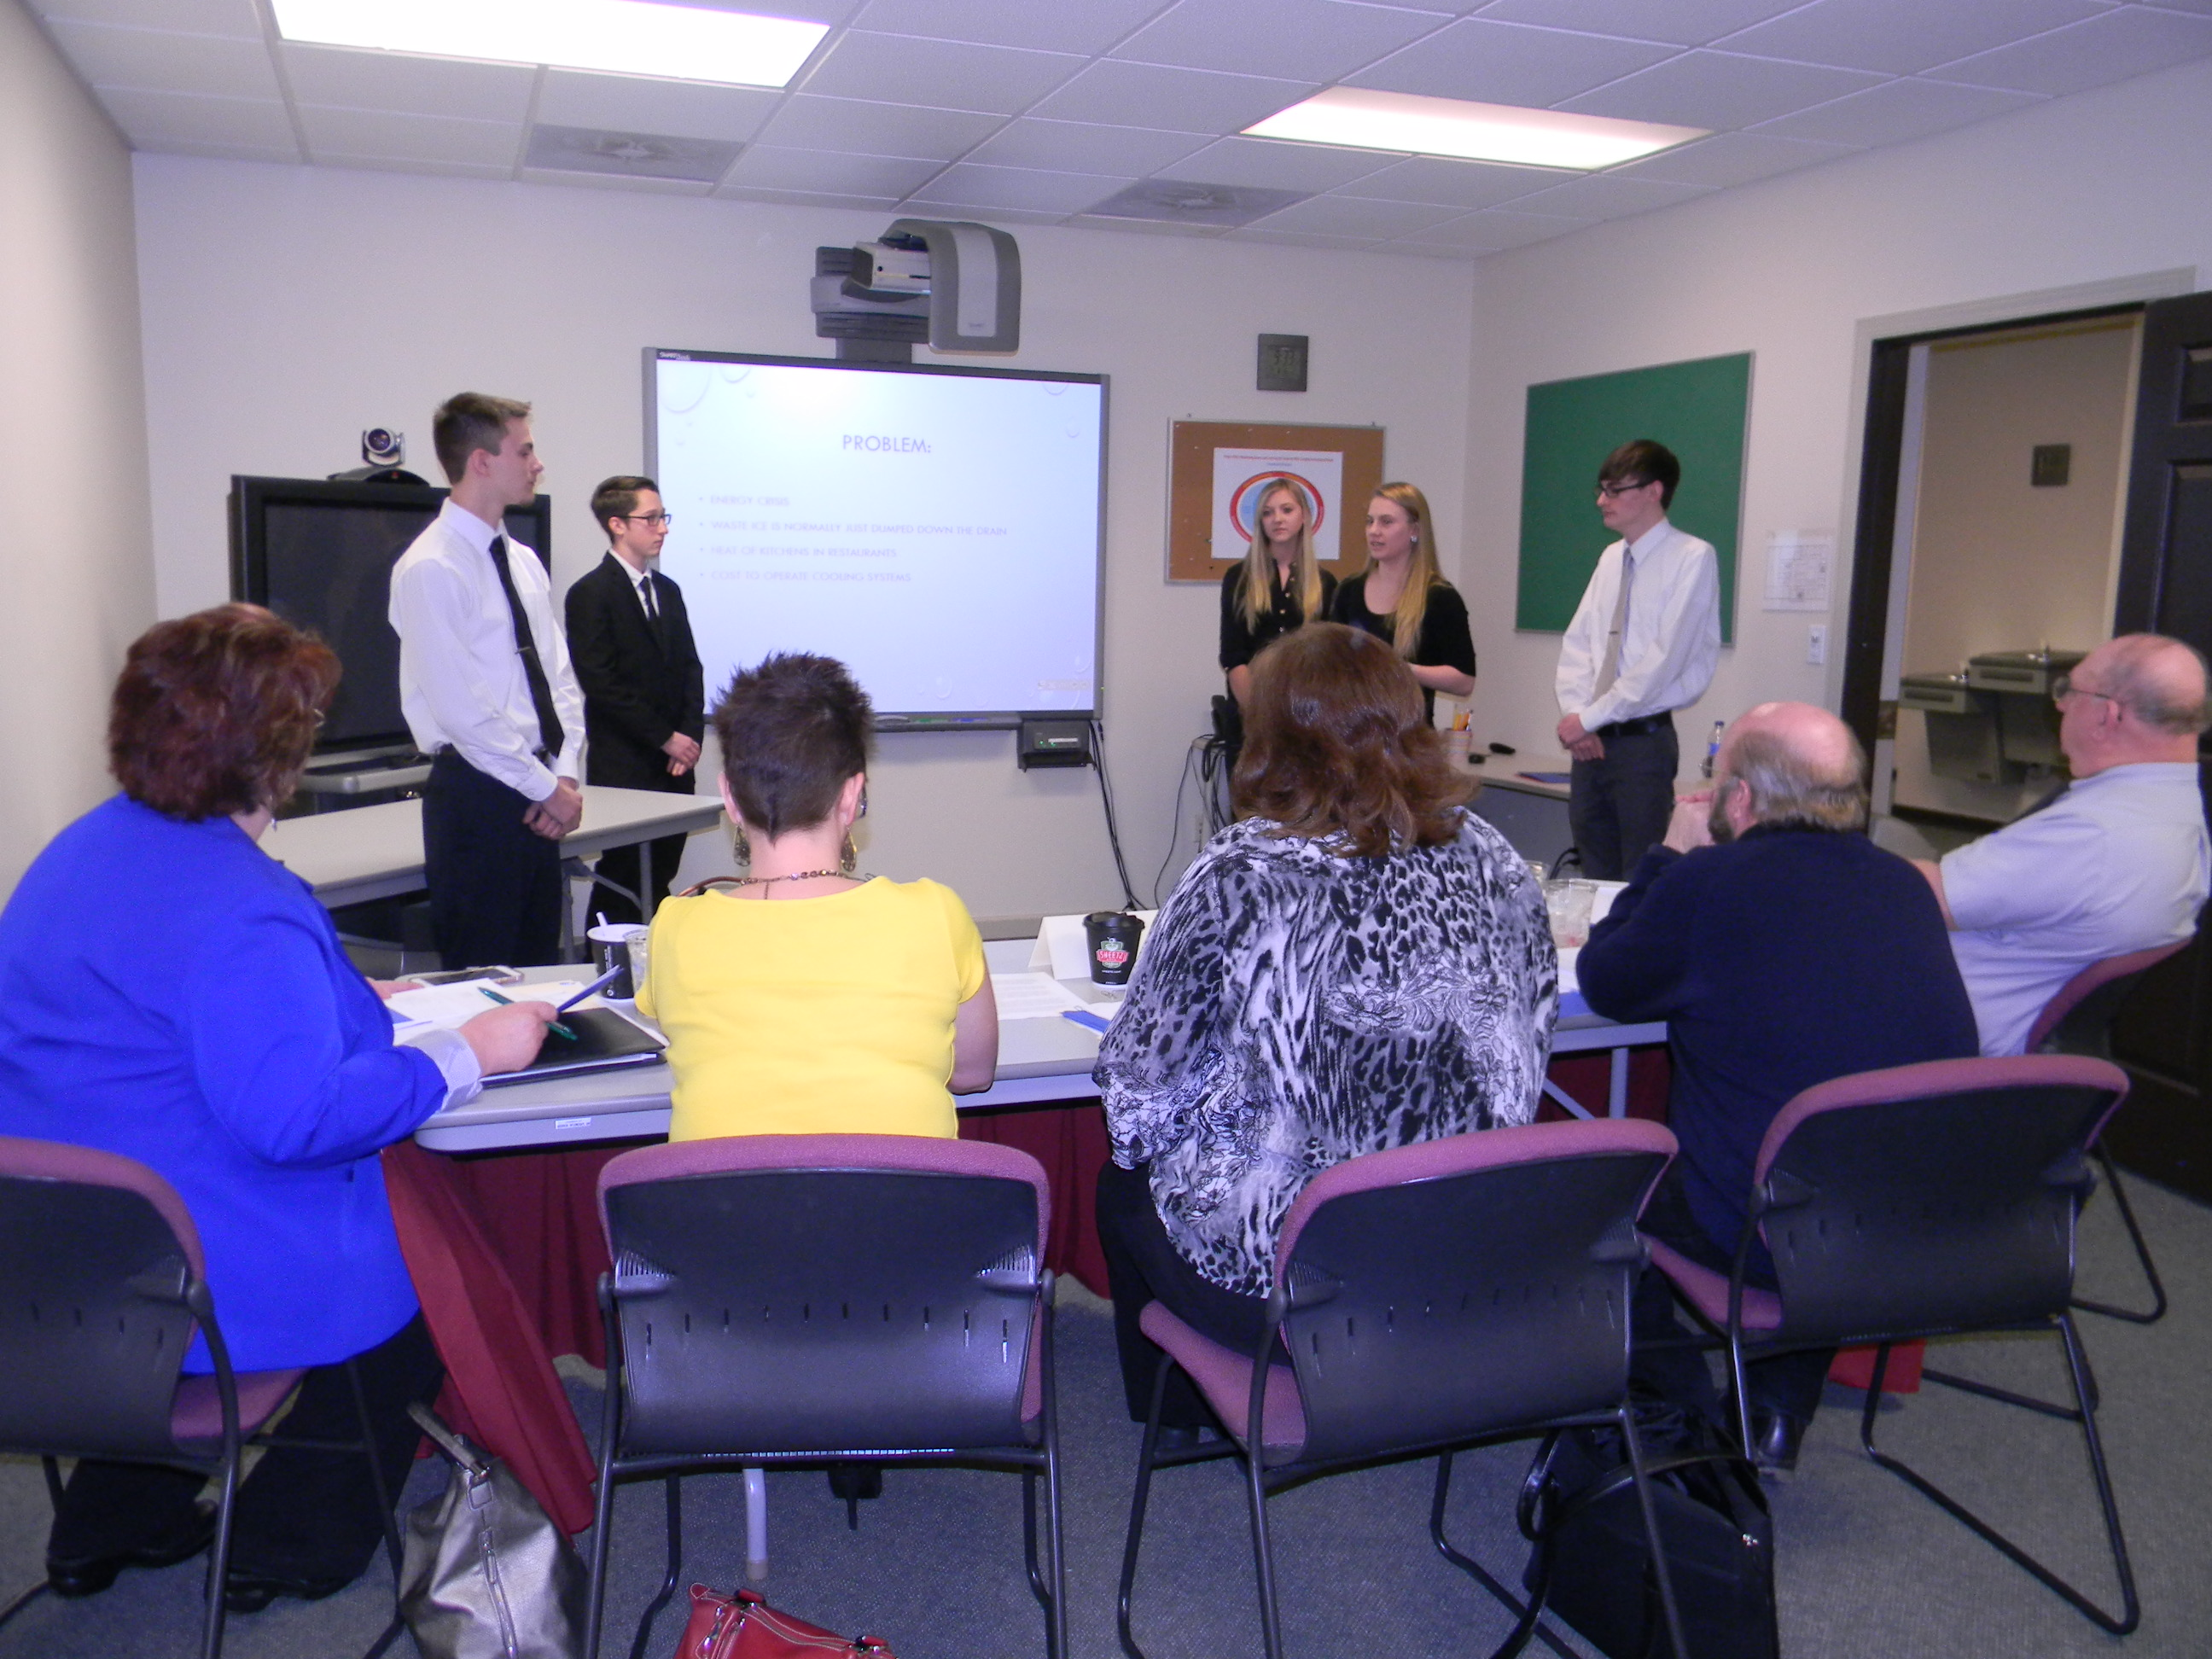 DuBois delivers their presentation to the judging panel.